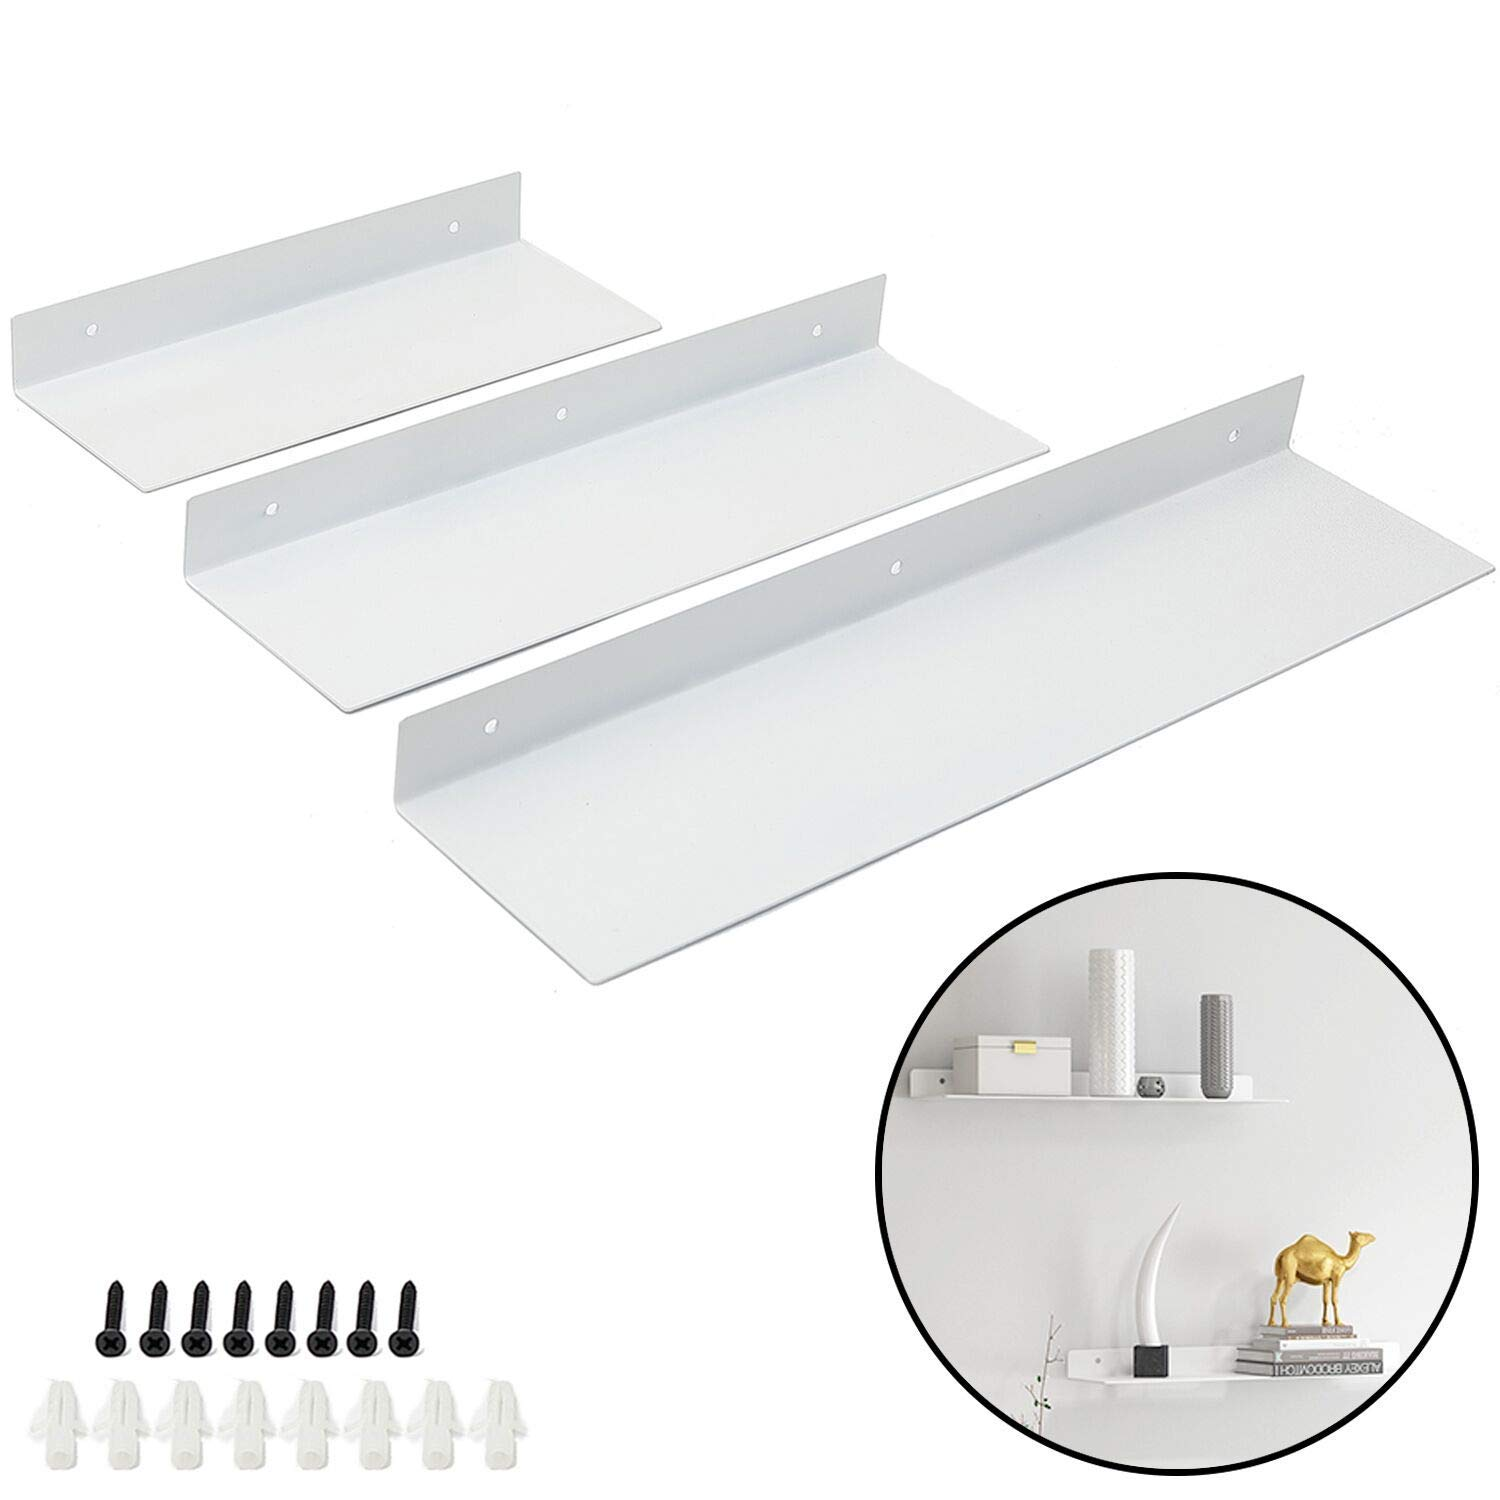 Ihomepark Floating Metal Shelves Wall Mounted, Heavy Duty Iron Decorative Ledge Shelf for Kitchen, Kids Room, Living Room - Perfect for CD Book Picture Frame Display Storage (Set of 3, White)